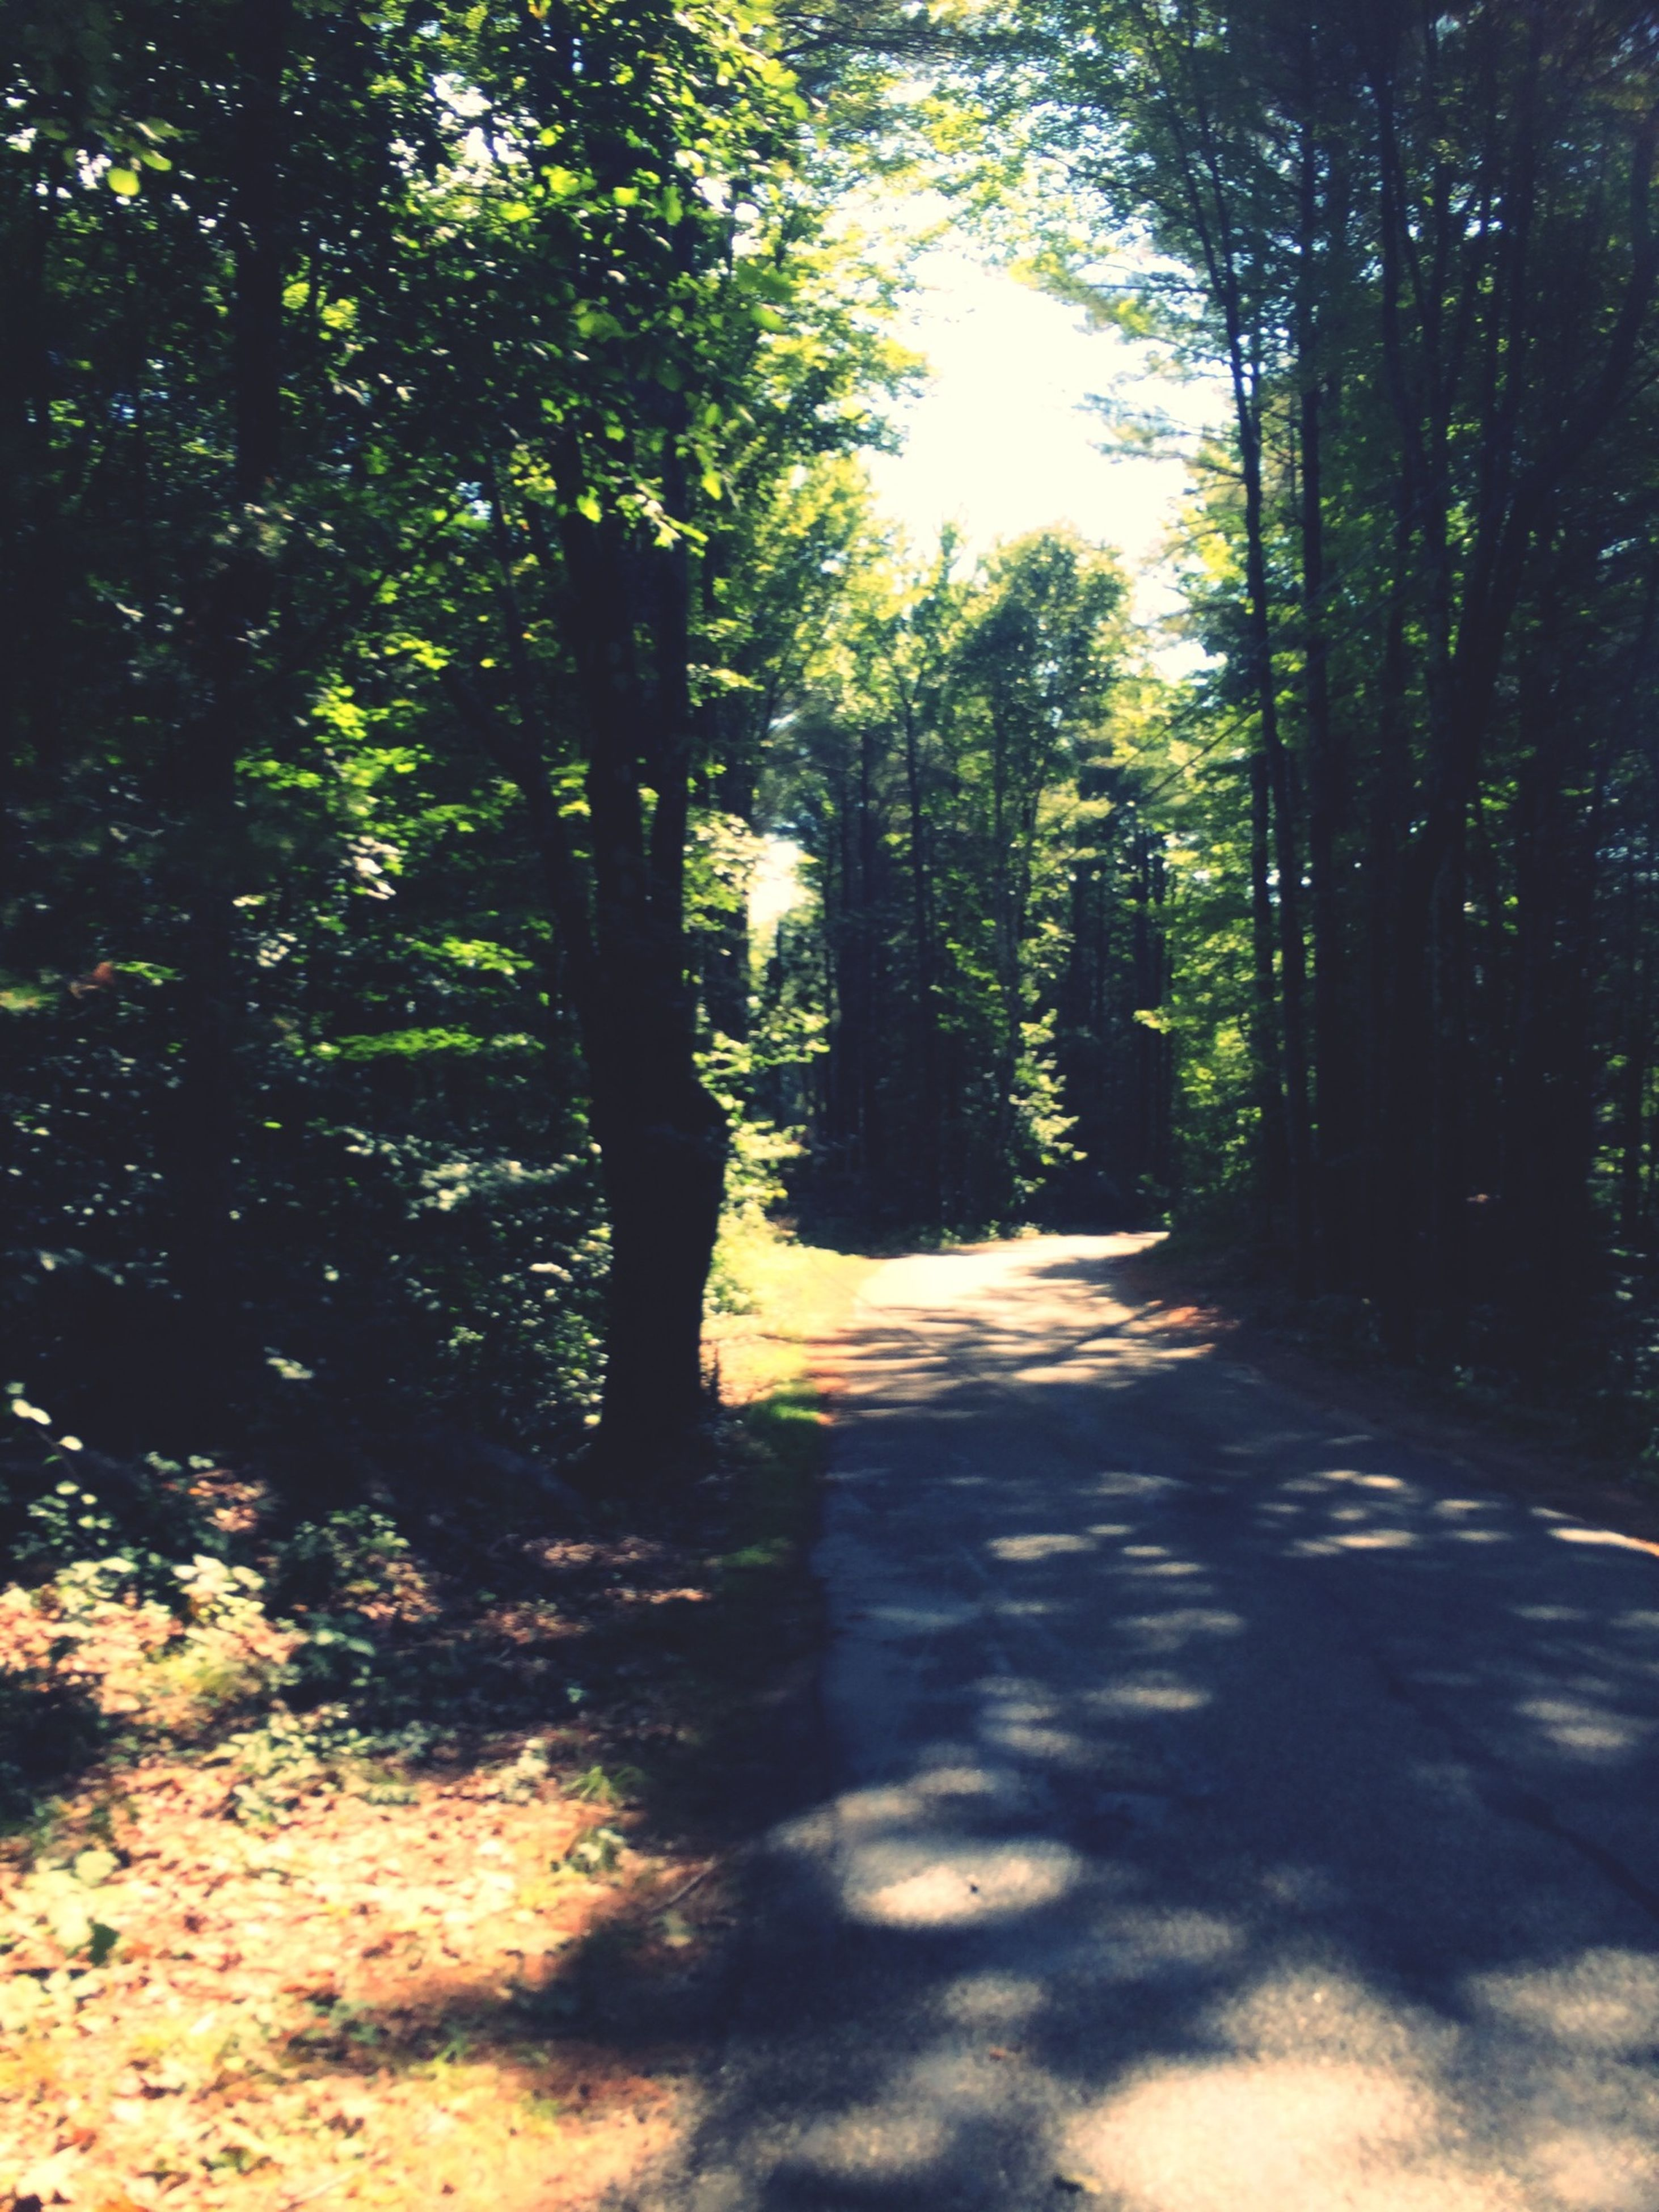 tree, the way forward, tranquility, forest, tree trunk, shadow, diminishing perspective, growth, sunlight, road, nature, tranquil scene, vanishing point, footpath, dirt road, transportation, beauty in nature, treelined, day, outdoors